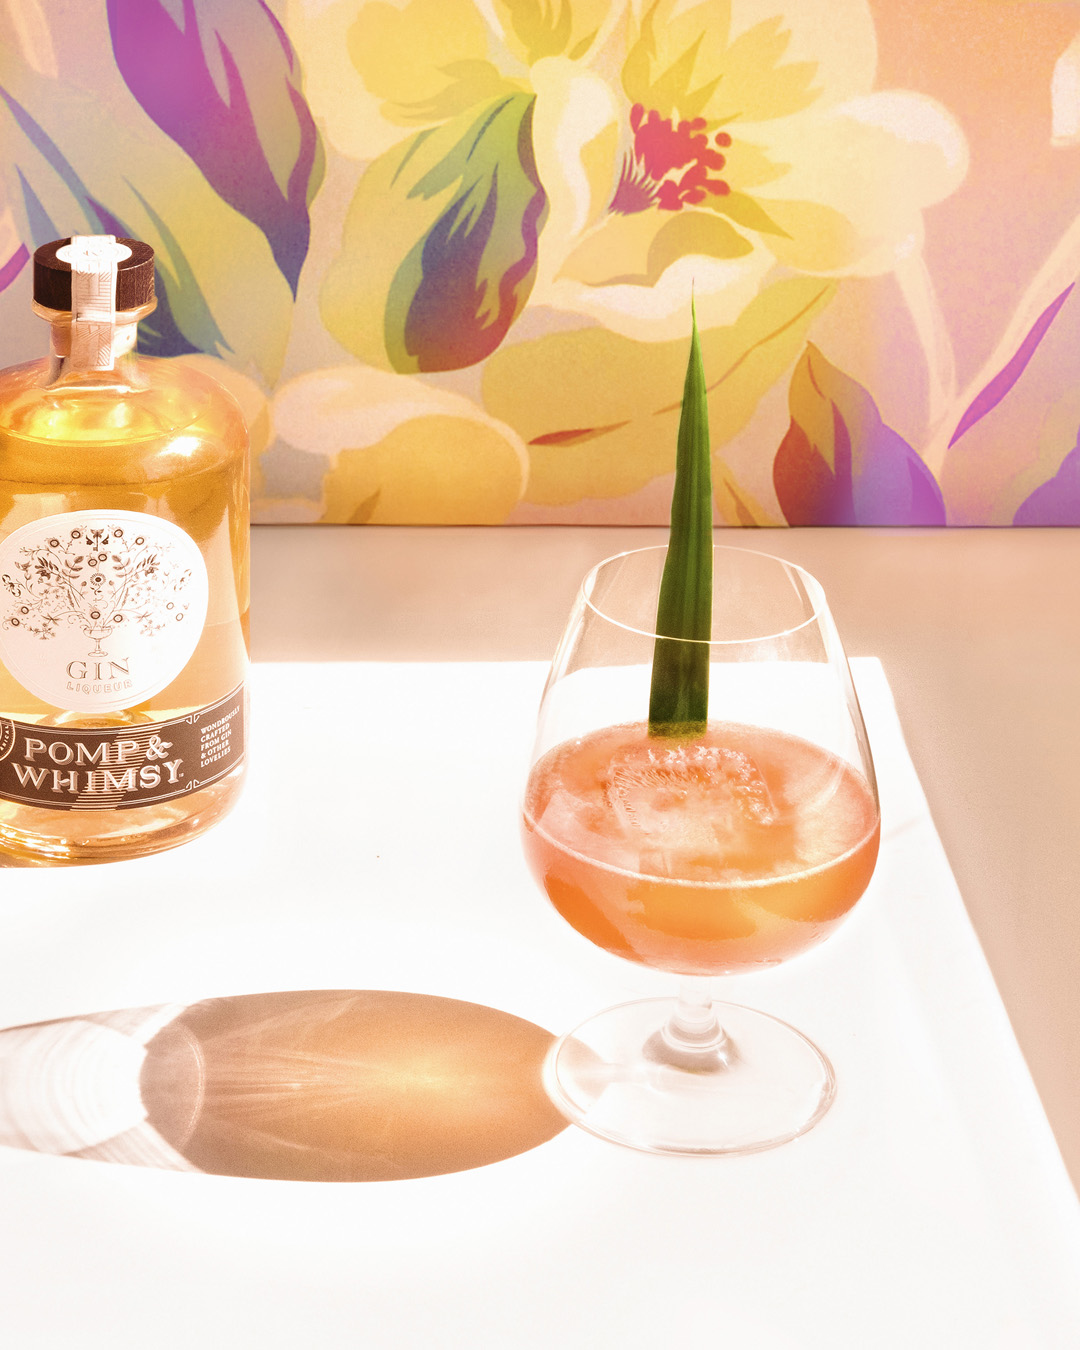 6 O'CLOCK TEA-KI TIME   2  oz  Malahat Black Tea Rum 1  oz  Pomp & Whimsy 1  oz  lime juice ½  oz  simple syrup dash tiki bitters or tiki spices   Shake ingredients with ice. Strain over ice into a glass and garnish with much muchness.